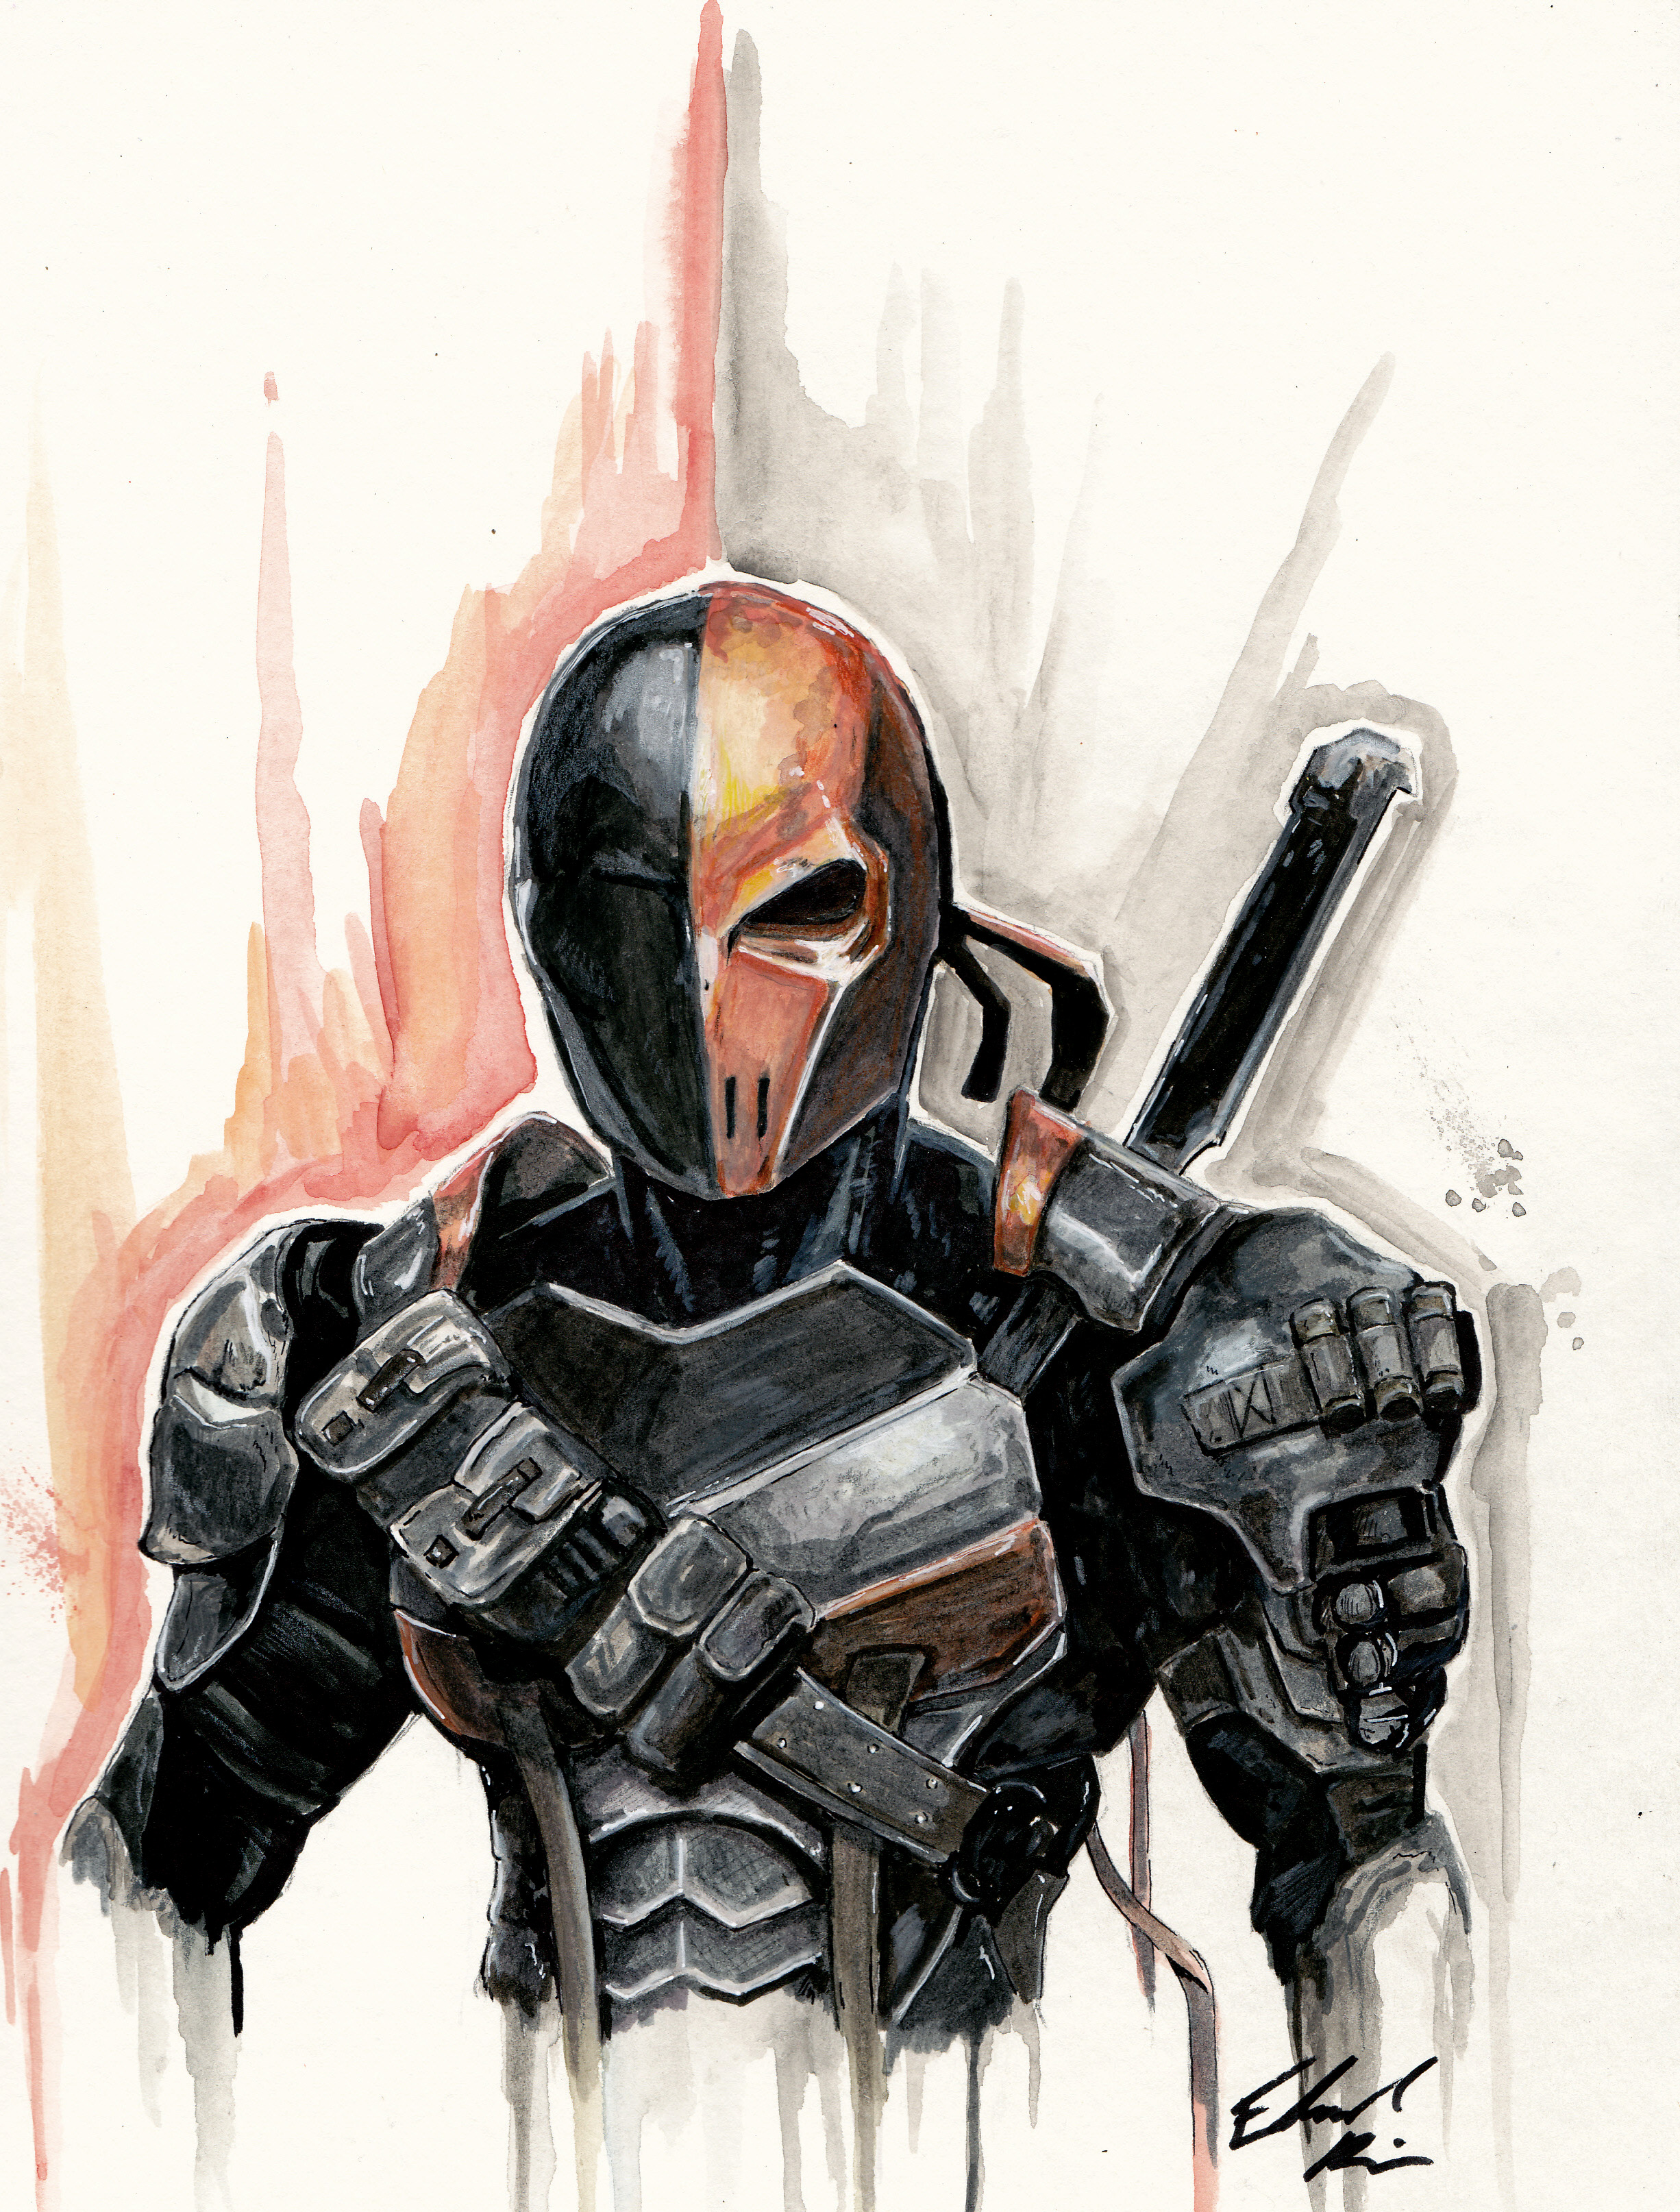 45abe0a9ec4 Deathstroke print · Taco Boy Designs · Online Store Powered by Storenvy